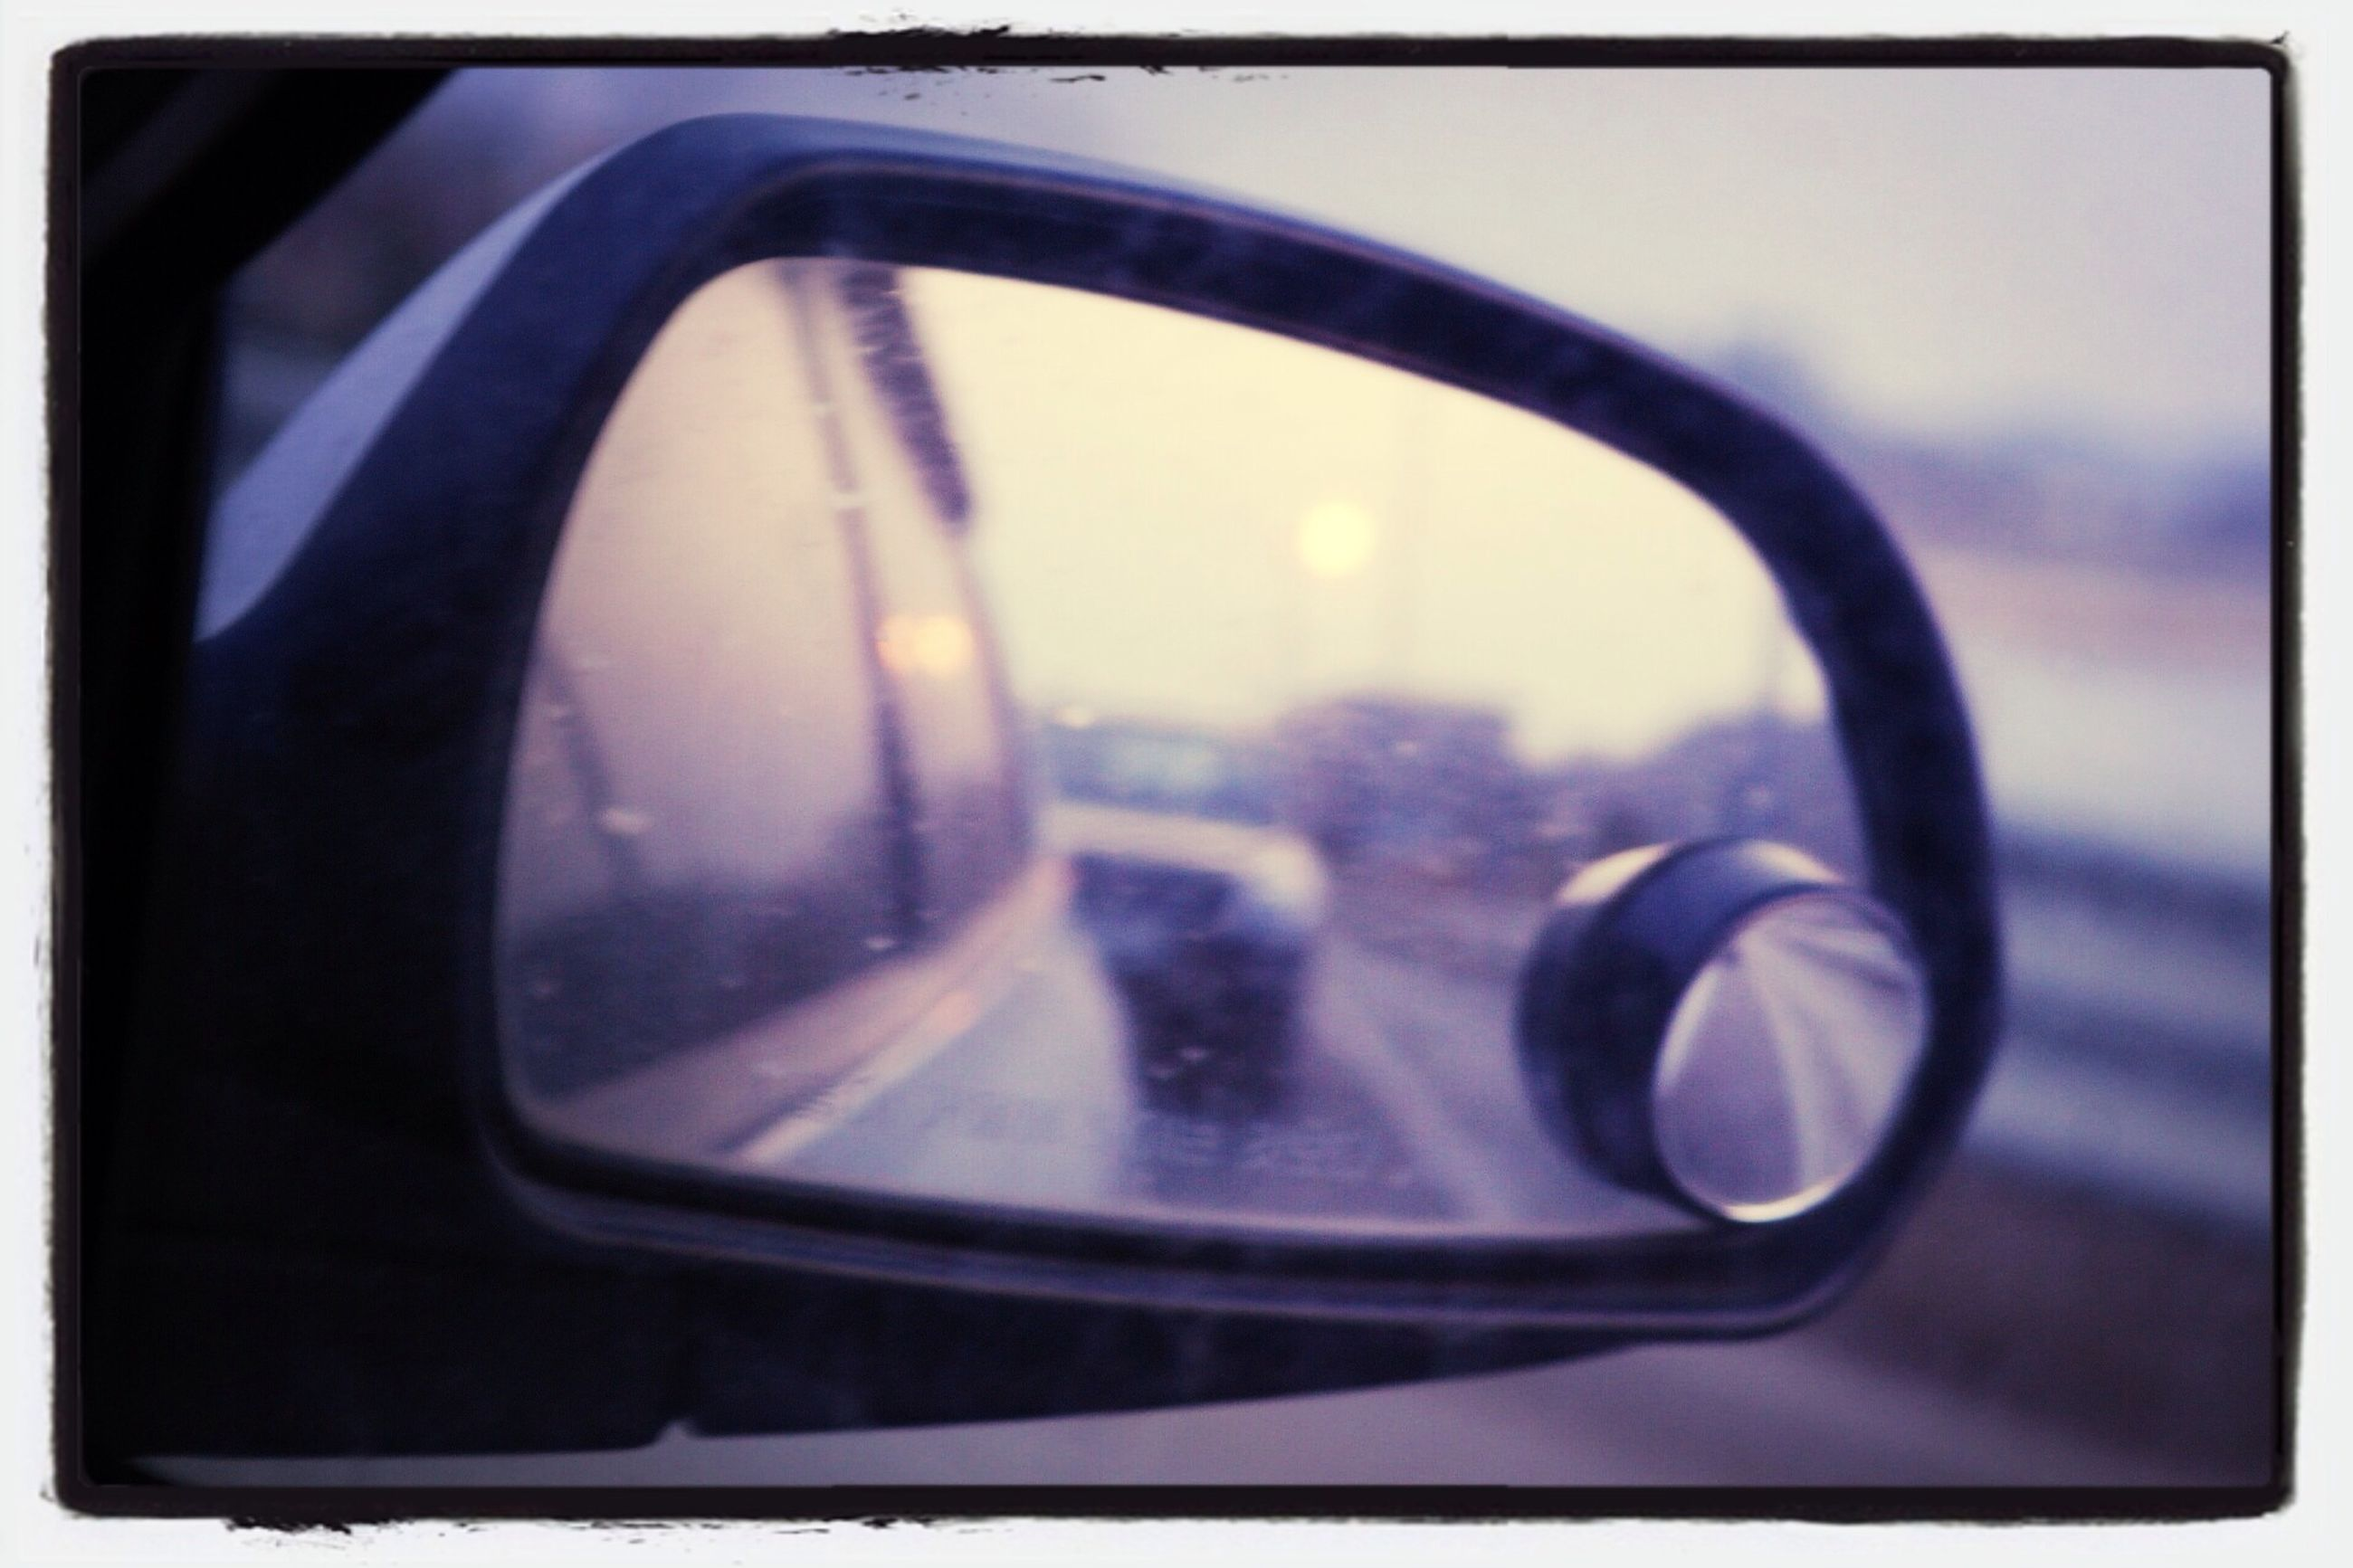 transportation, mode of transport, land vehicle, car, transfer print, side-view mirror, vehicle interior, reflection, auto post production filter, close-up, car interior, glass - material, part of, travel, transparent, focus on foreground, window, steering wheel, on the move, stationary